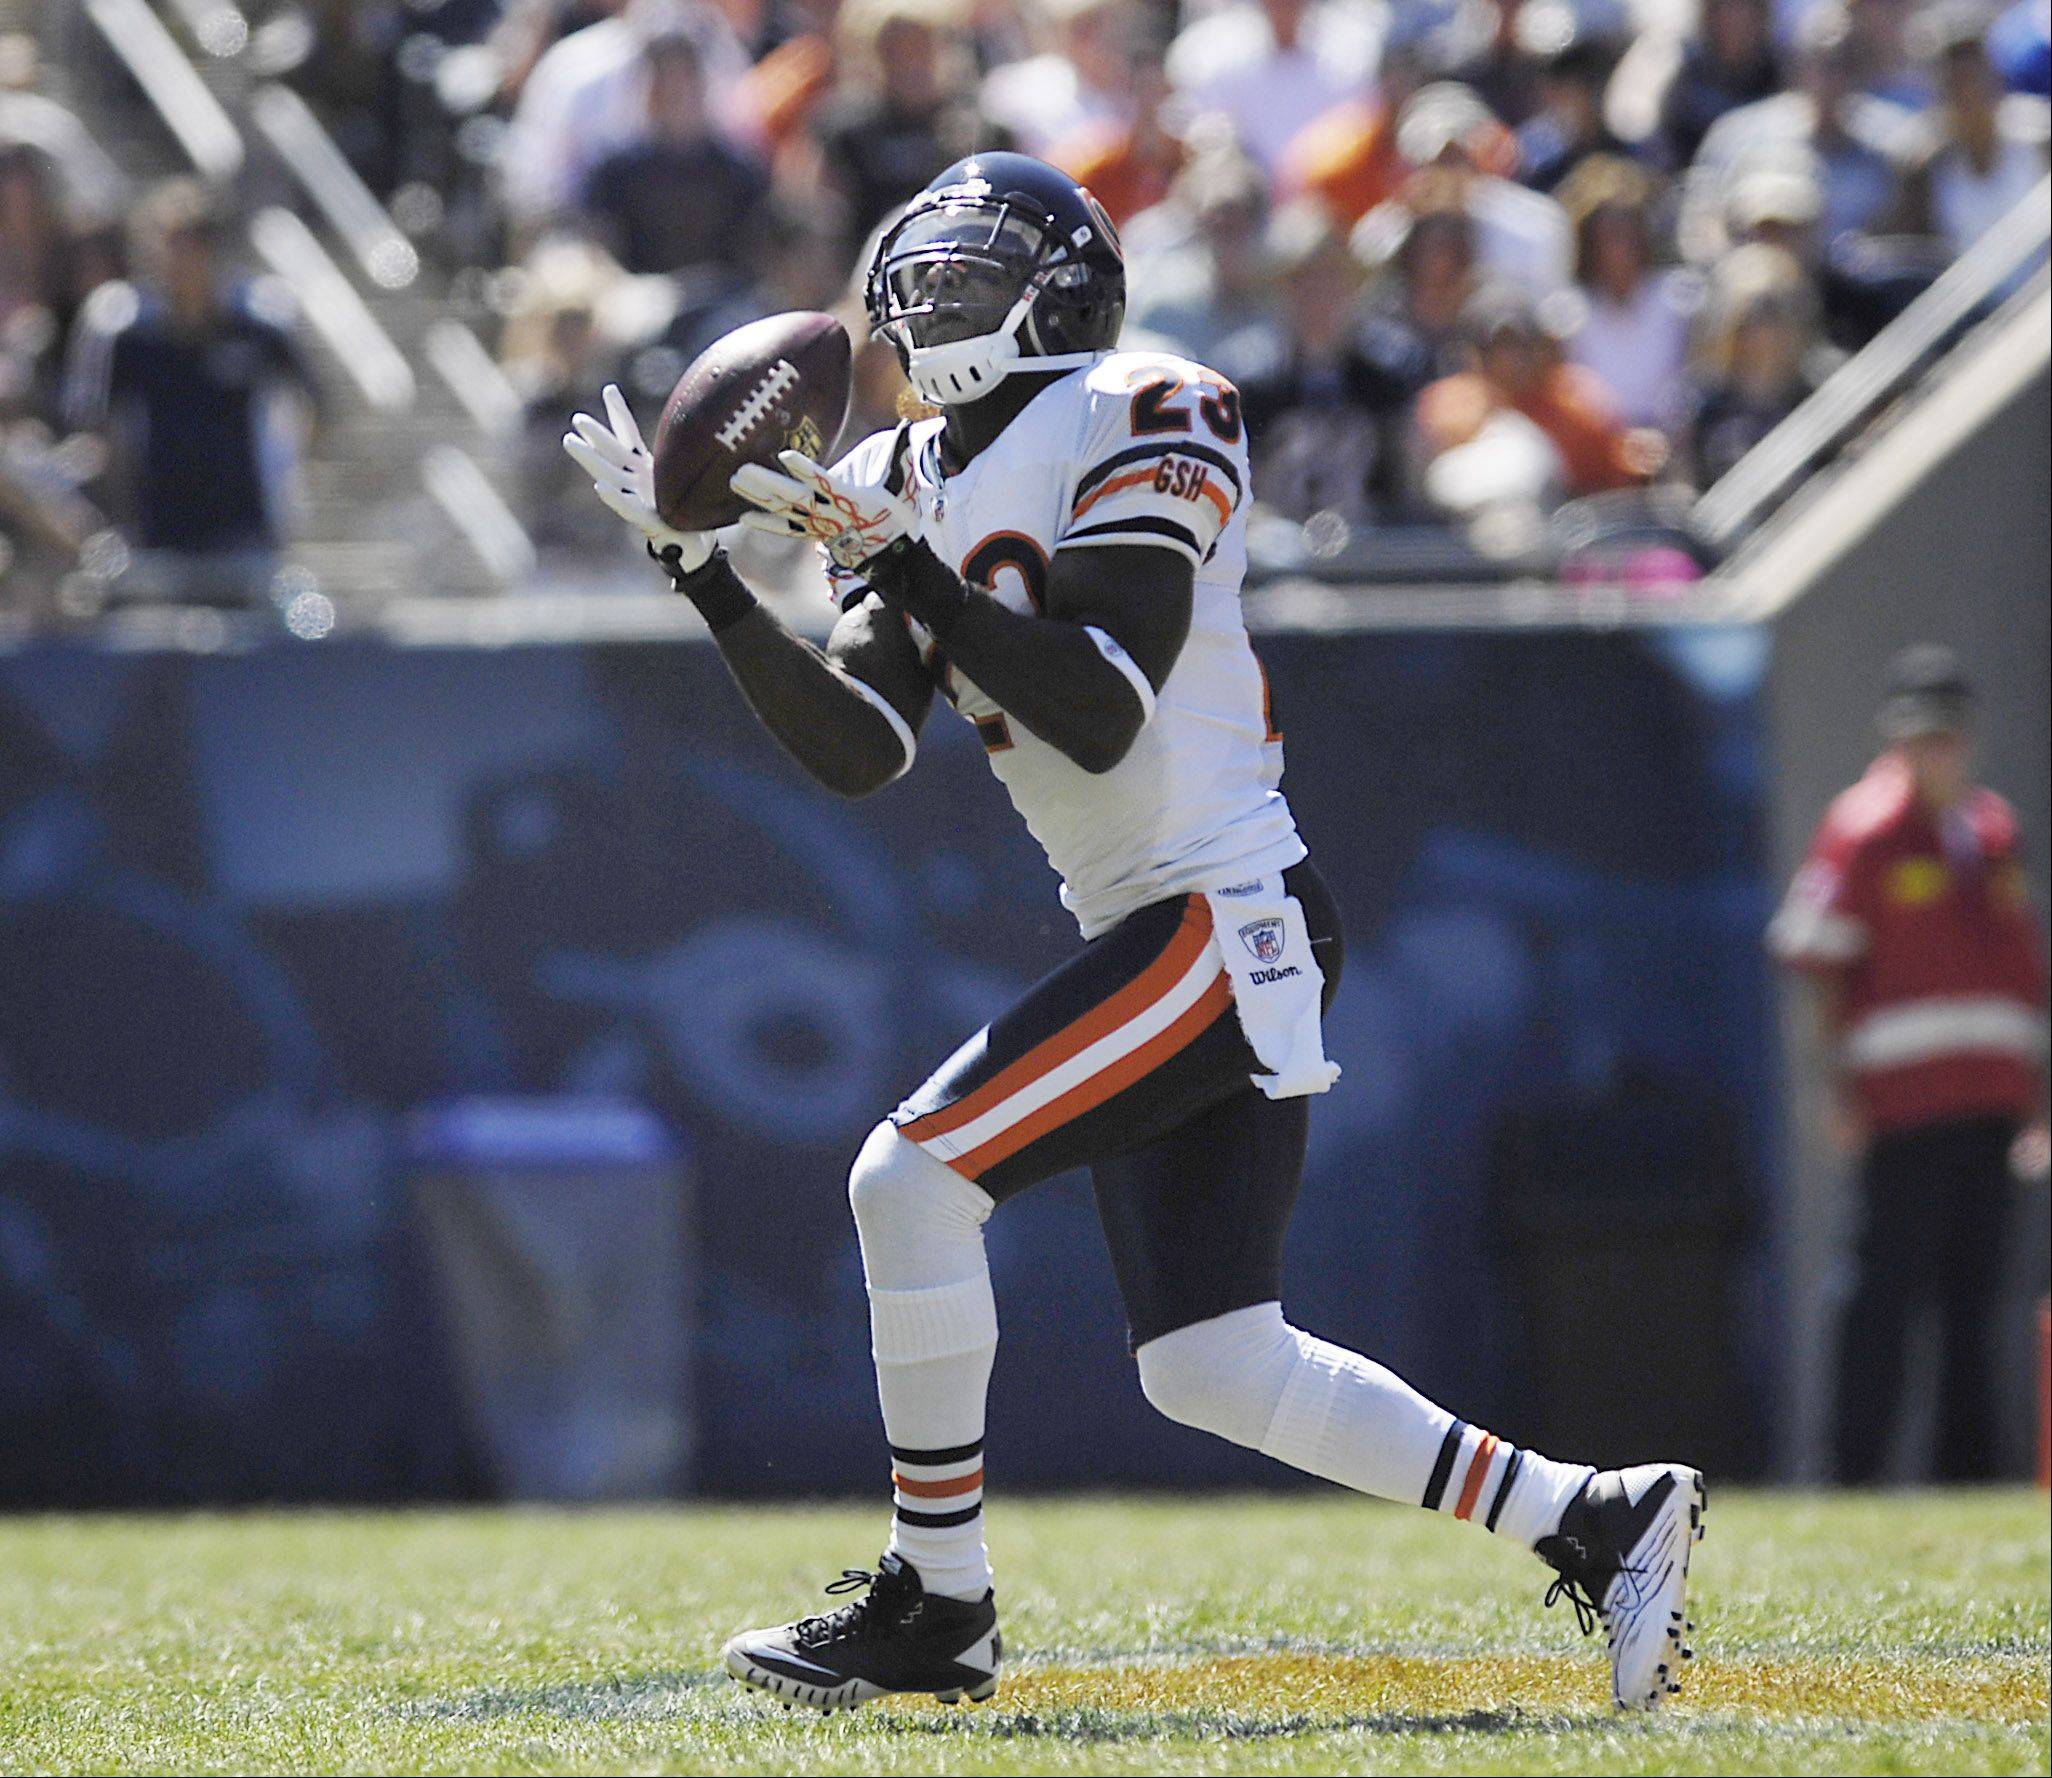 Devin Hester agreed with special teams coach Dave Toub that he needs to play better in the return game.